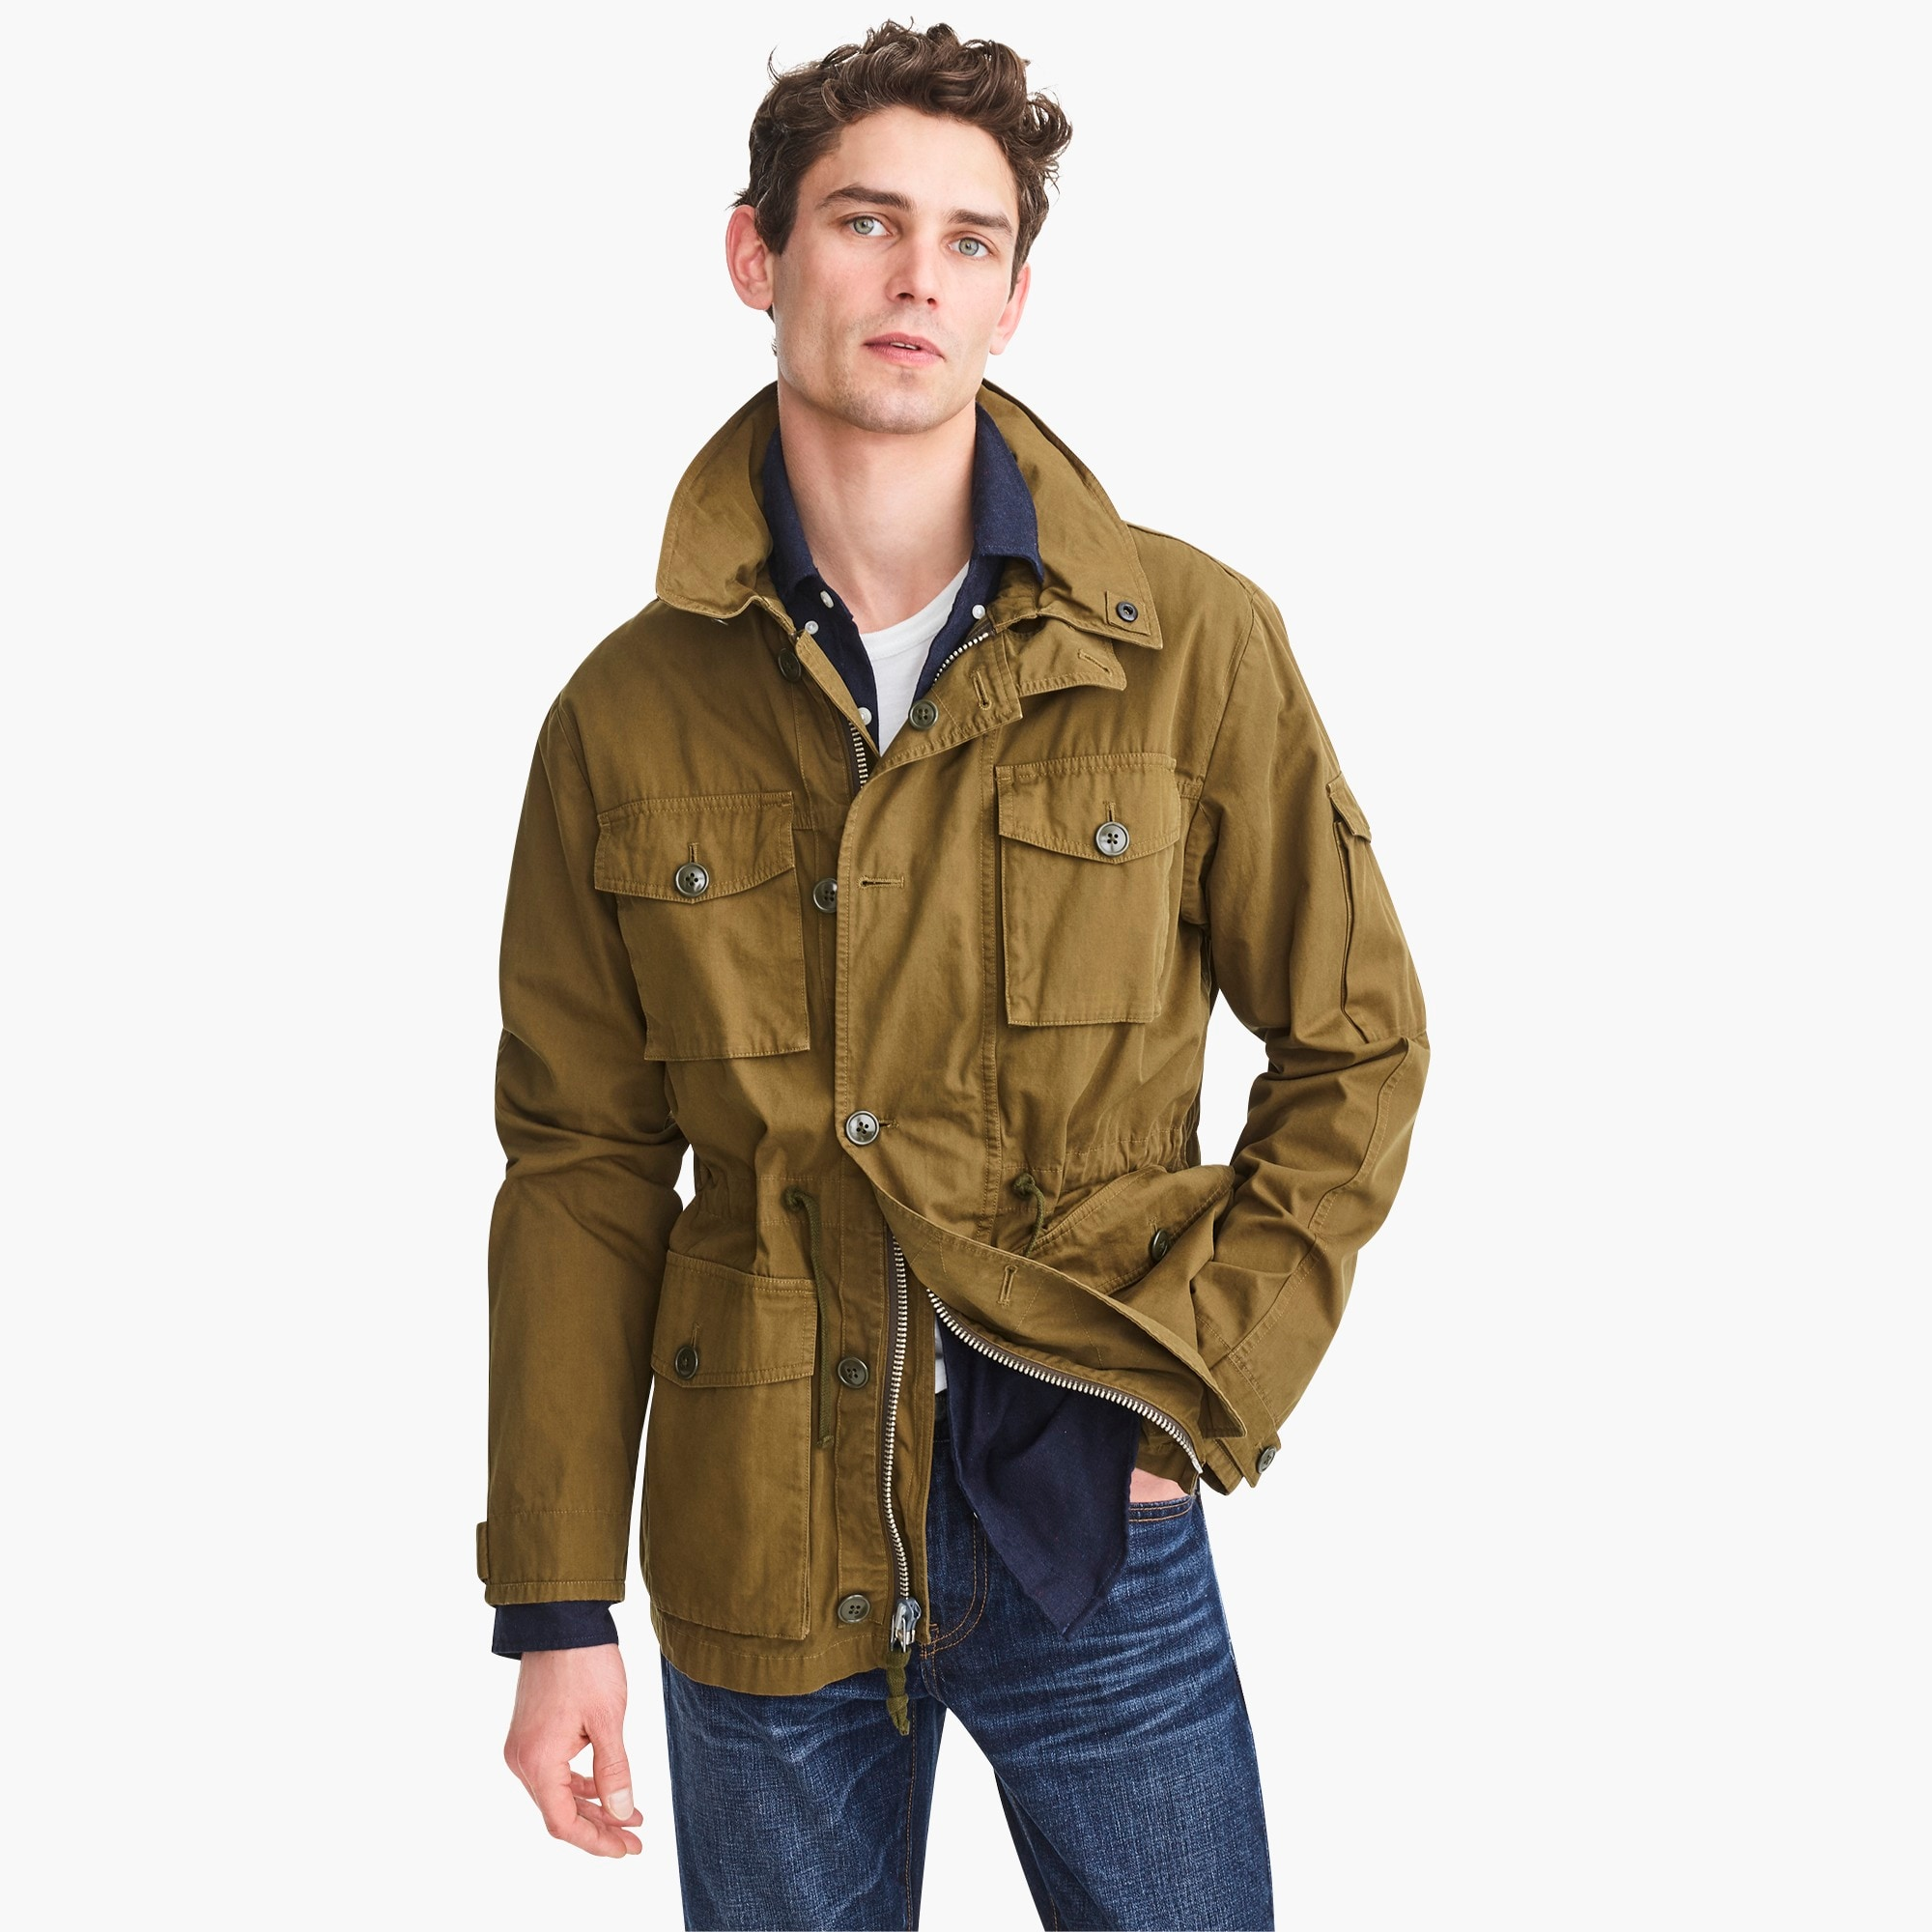 men's tall field mechanic jacket - men's outerwear & jackets